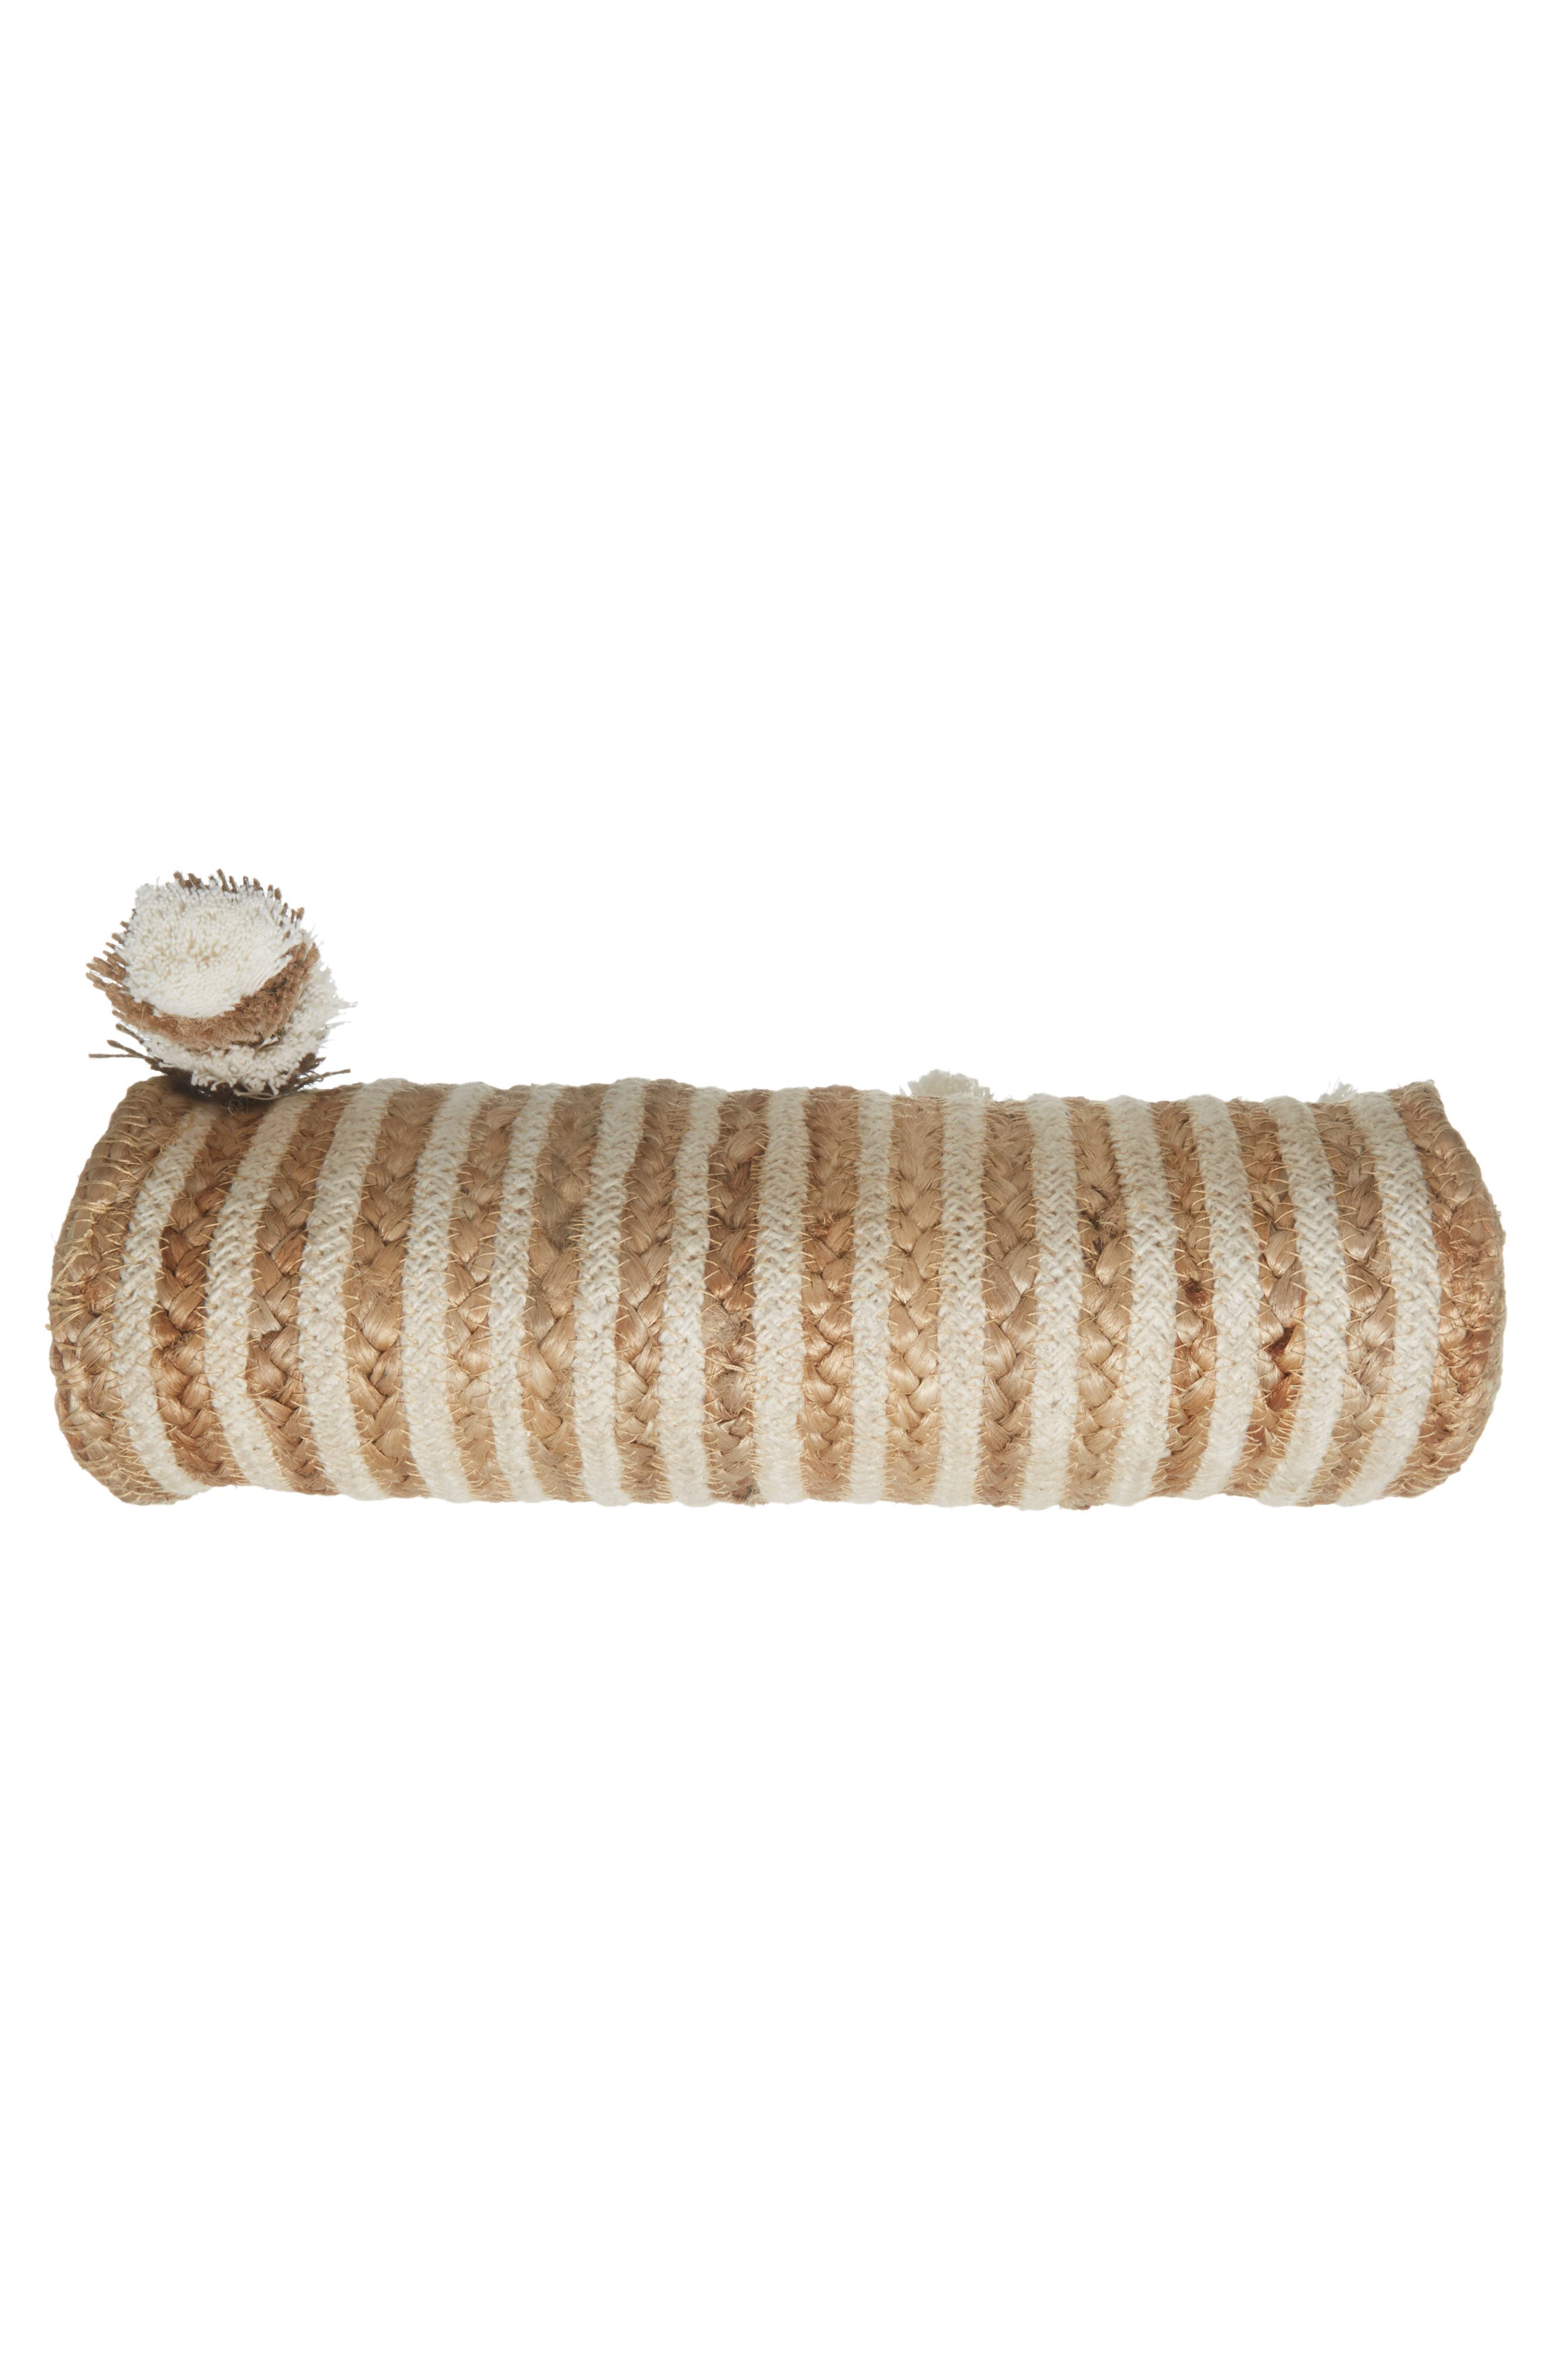 Mare Straw Clutch,                             Alternate thumbnail 6, color,                             Ivory